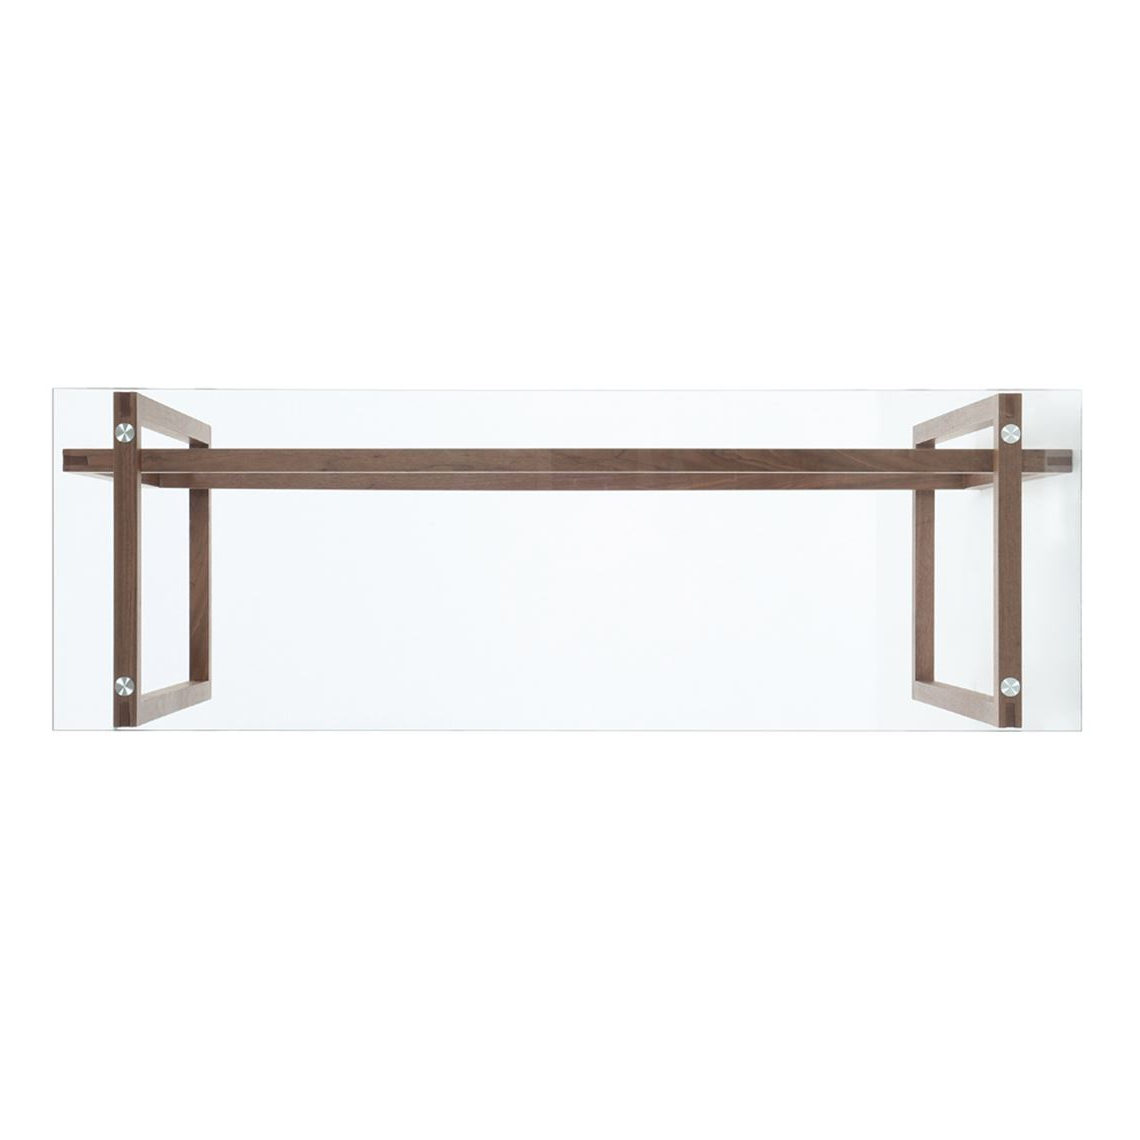 Kyra Console Table | Freedom Throughout Kyra Console Tables (Gallery 5 of 20)